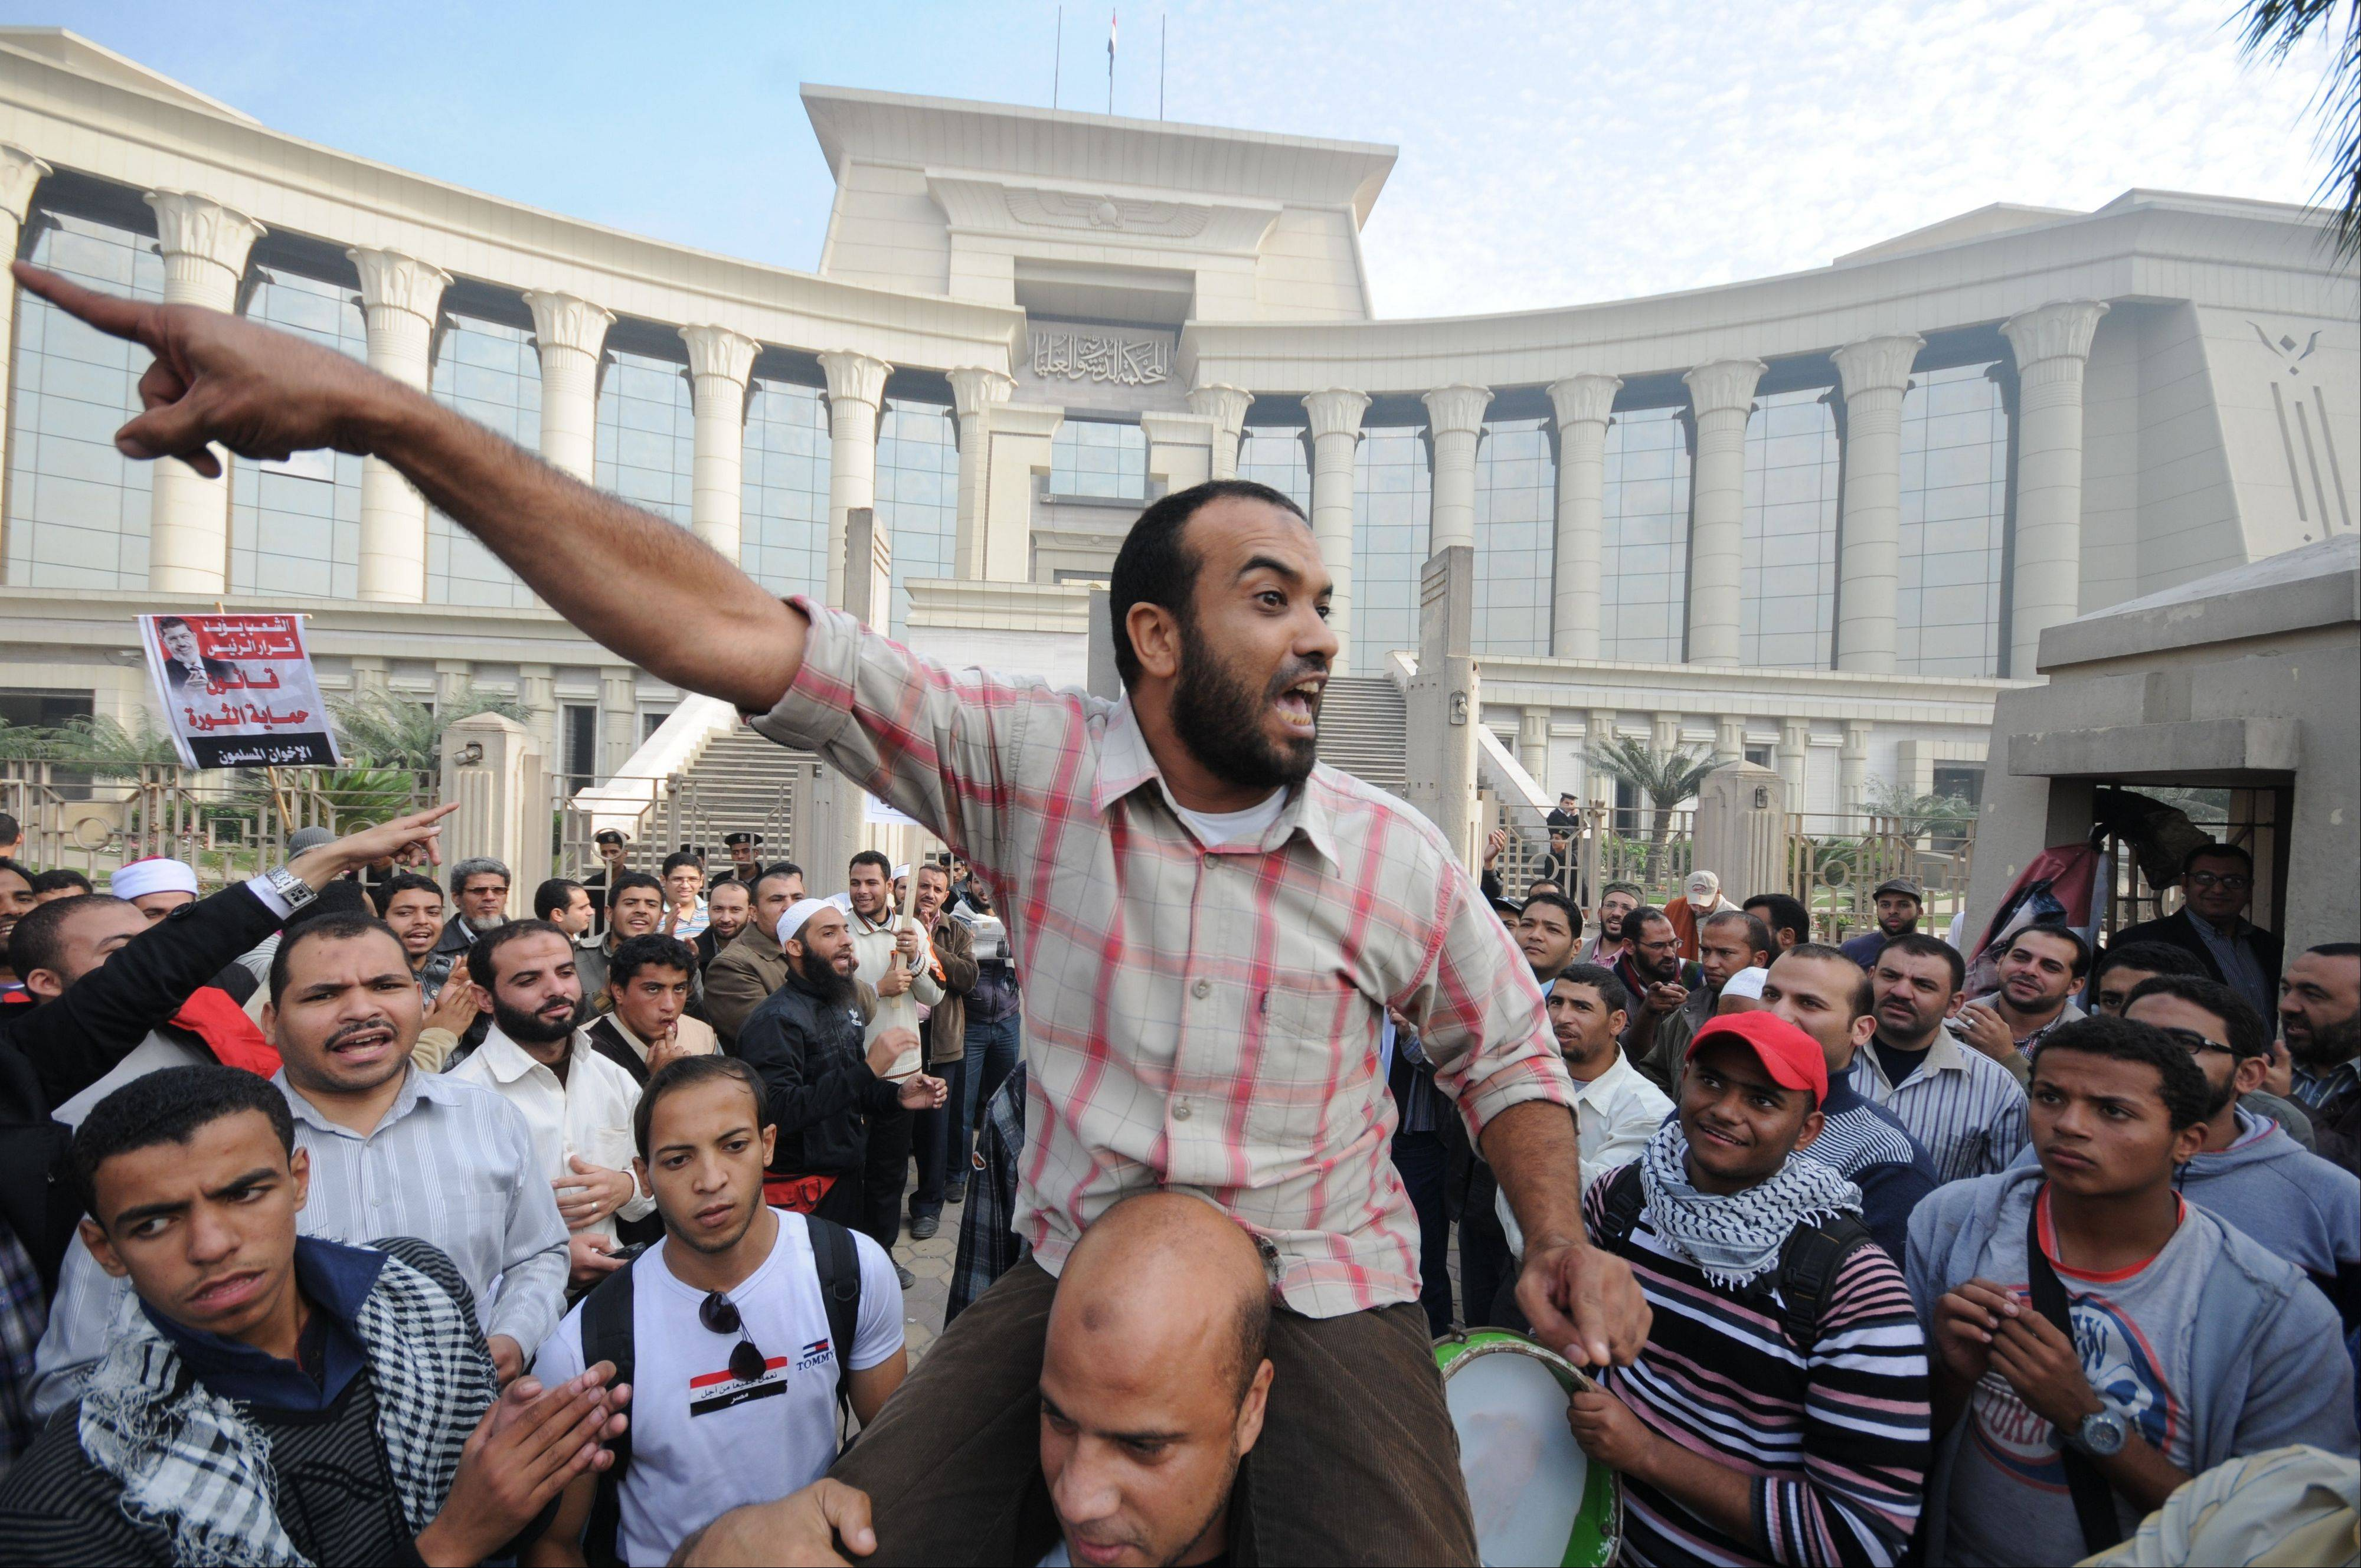 A demonstrator chants slogans Sunday as several thousand supporters of Islamist President Mohammed Morsi surrounded the Supreme Constitutional Court on Sunday to prevent the judges from entering and ruling on the legitimacy of the nation's Islamist-dominated constituent assembly.